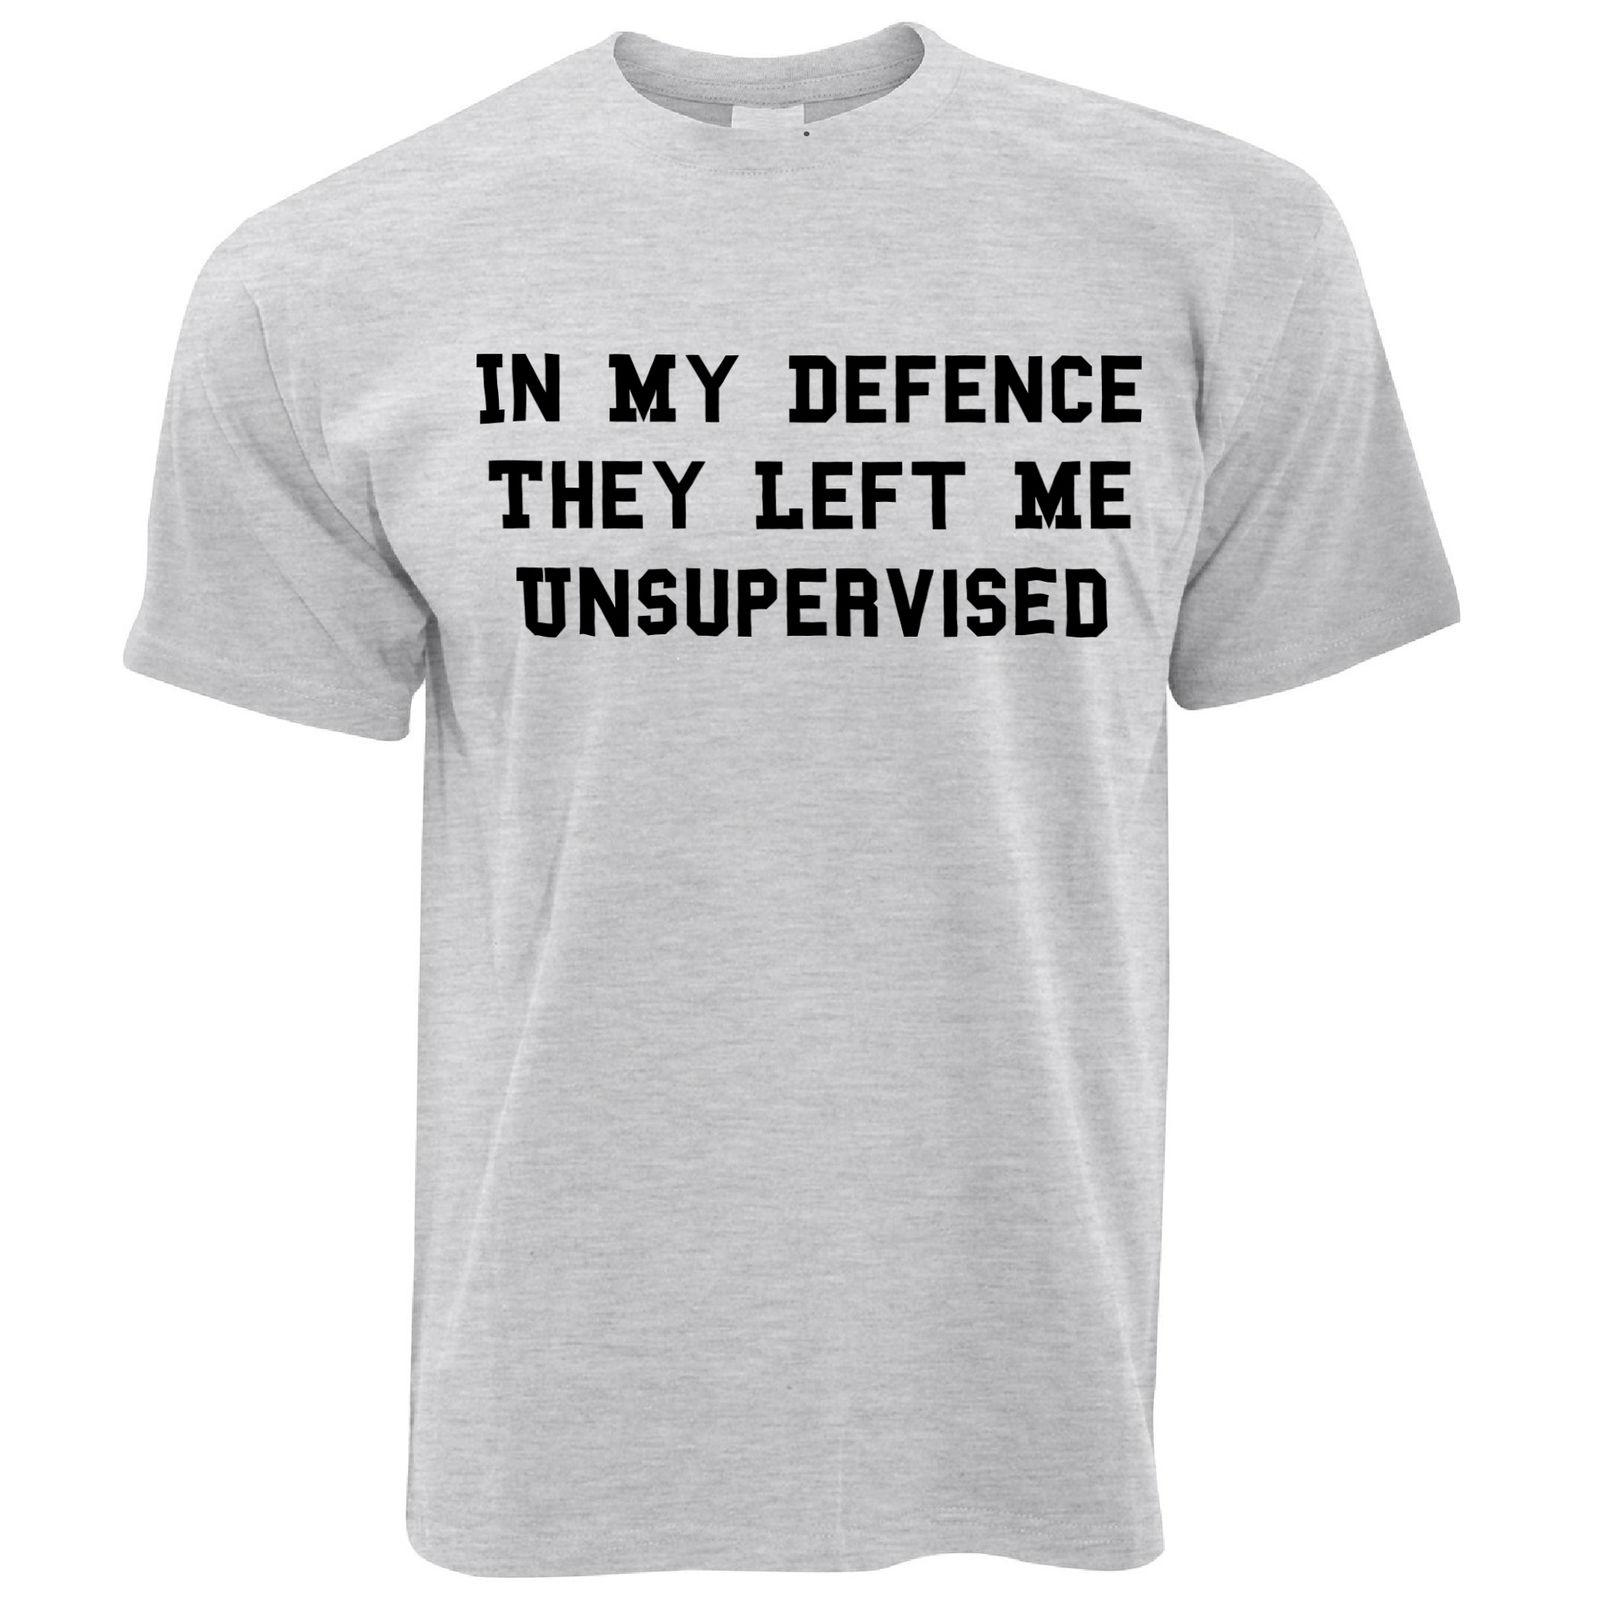 Details zu Joke T Shirt In My Defence They Left Me Unsupervised Funny Slogan Prank Funny free shipping Unisex Casual tee gift